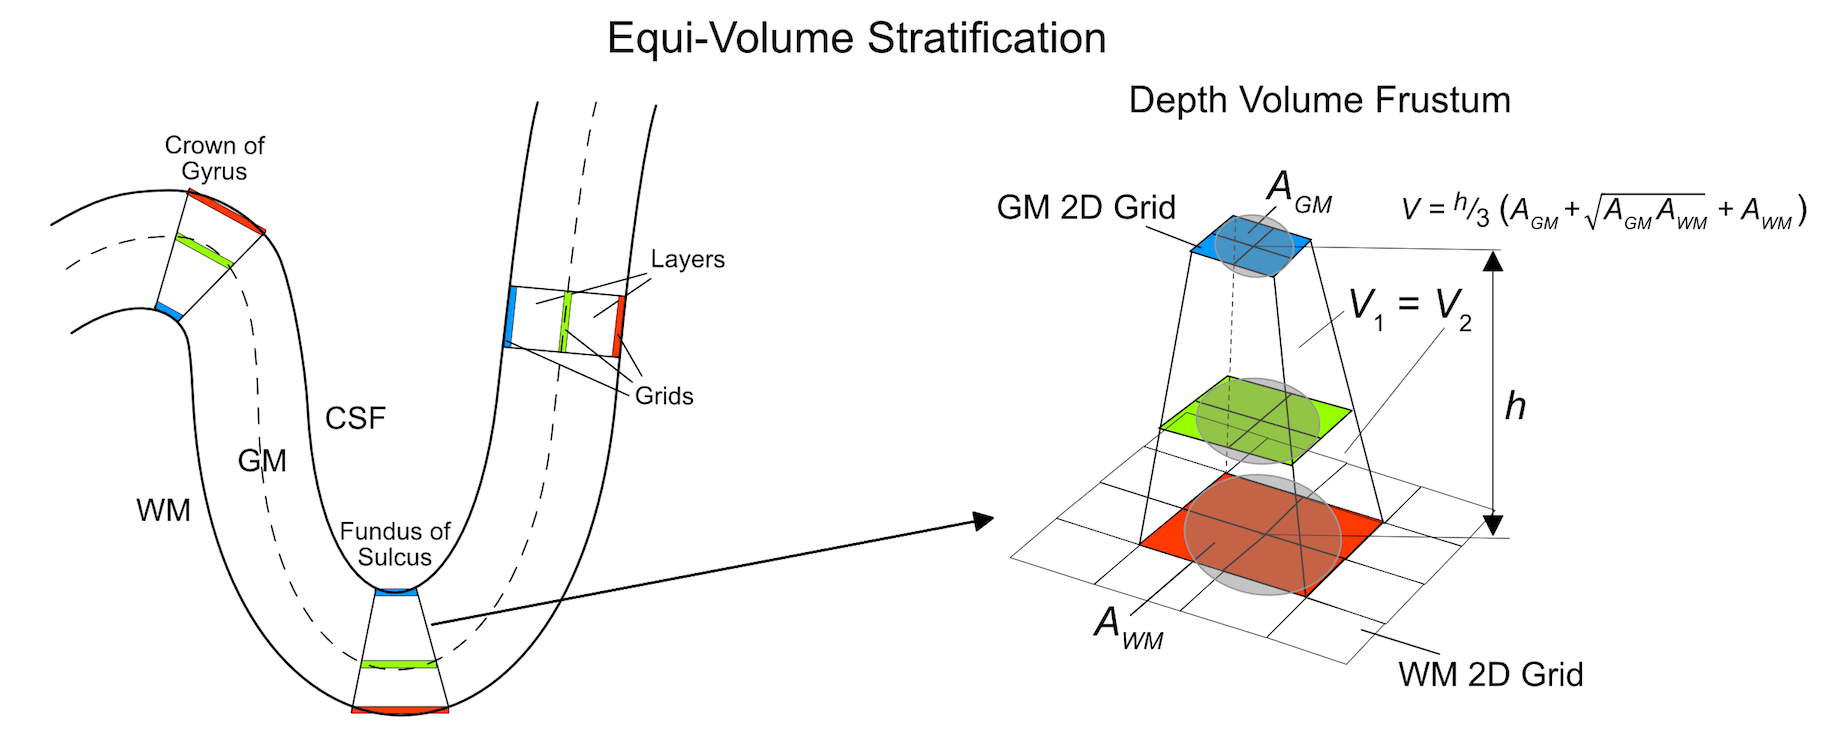 hight resolution of  2017 illustrates the principle of equi volume cortical depth sampling for grids as implemented in brainvoyager the schematic explanation uses 3 grids